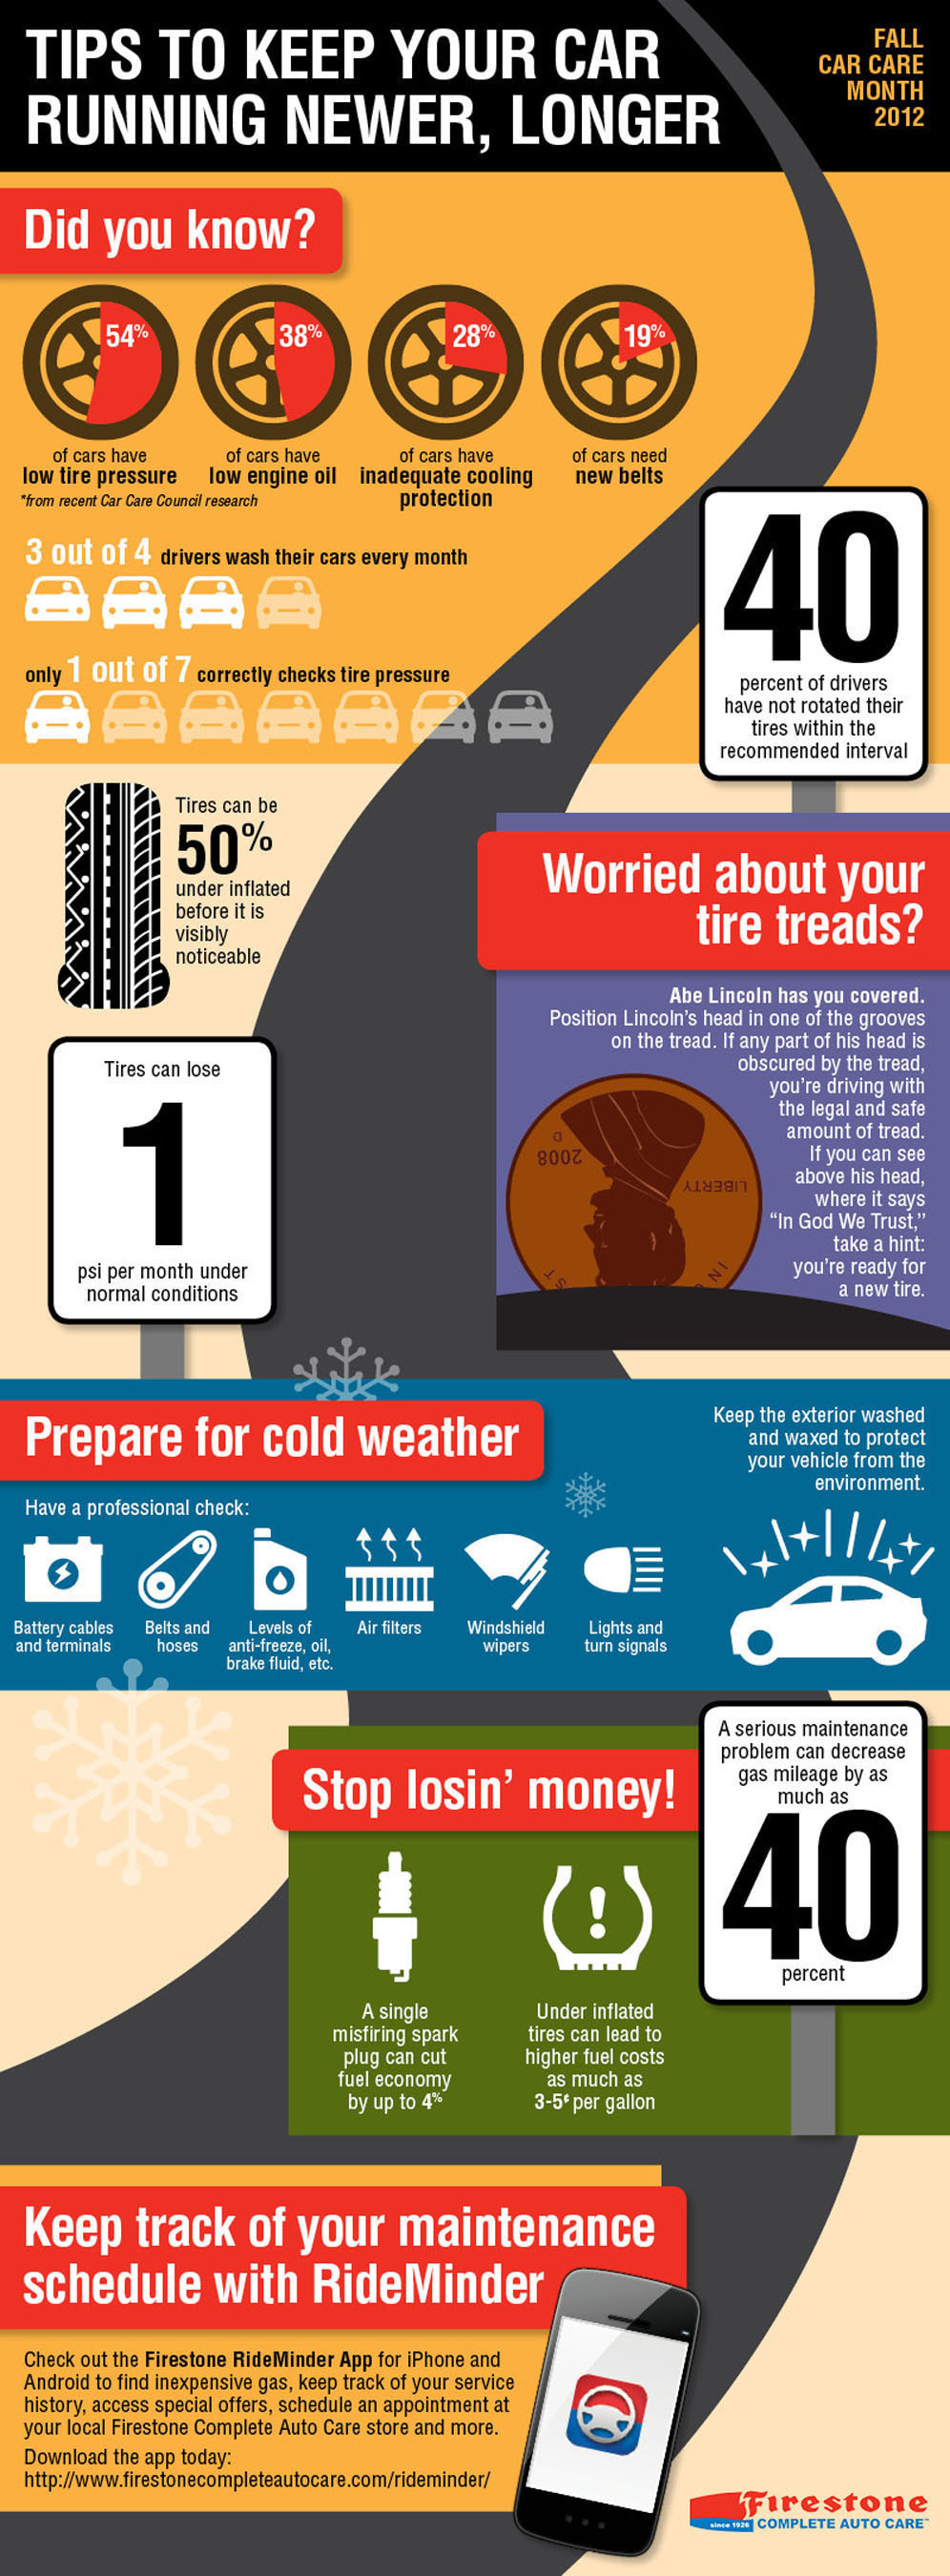 Infographic includes tips to keep your car running newer, longer for Fall Car Care Month.  (PRNewsFoto/Bridgestone Retail Operations, LLC)